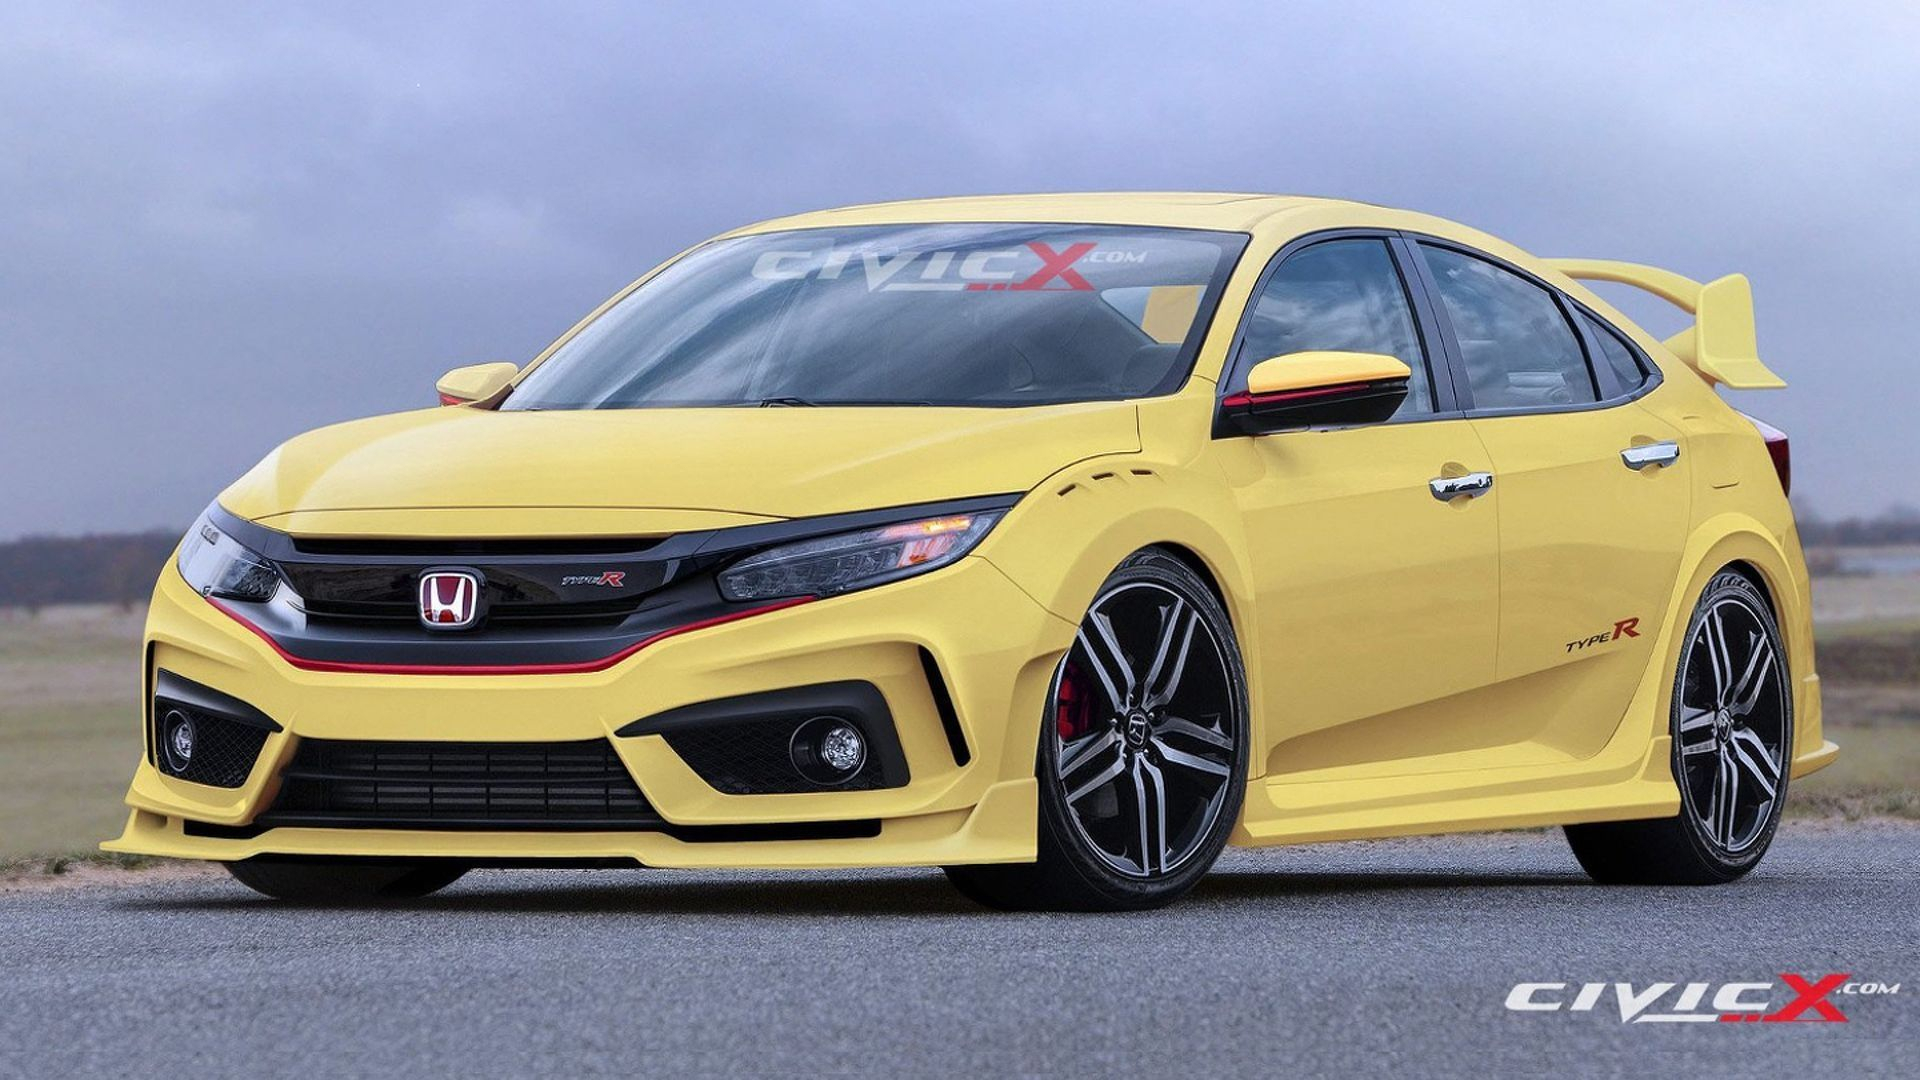 99 The 2020 Honda Civic Si Type R New Concept